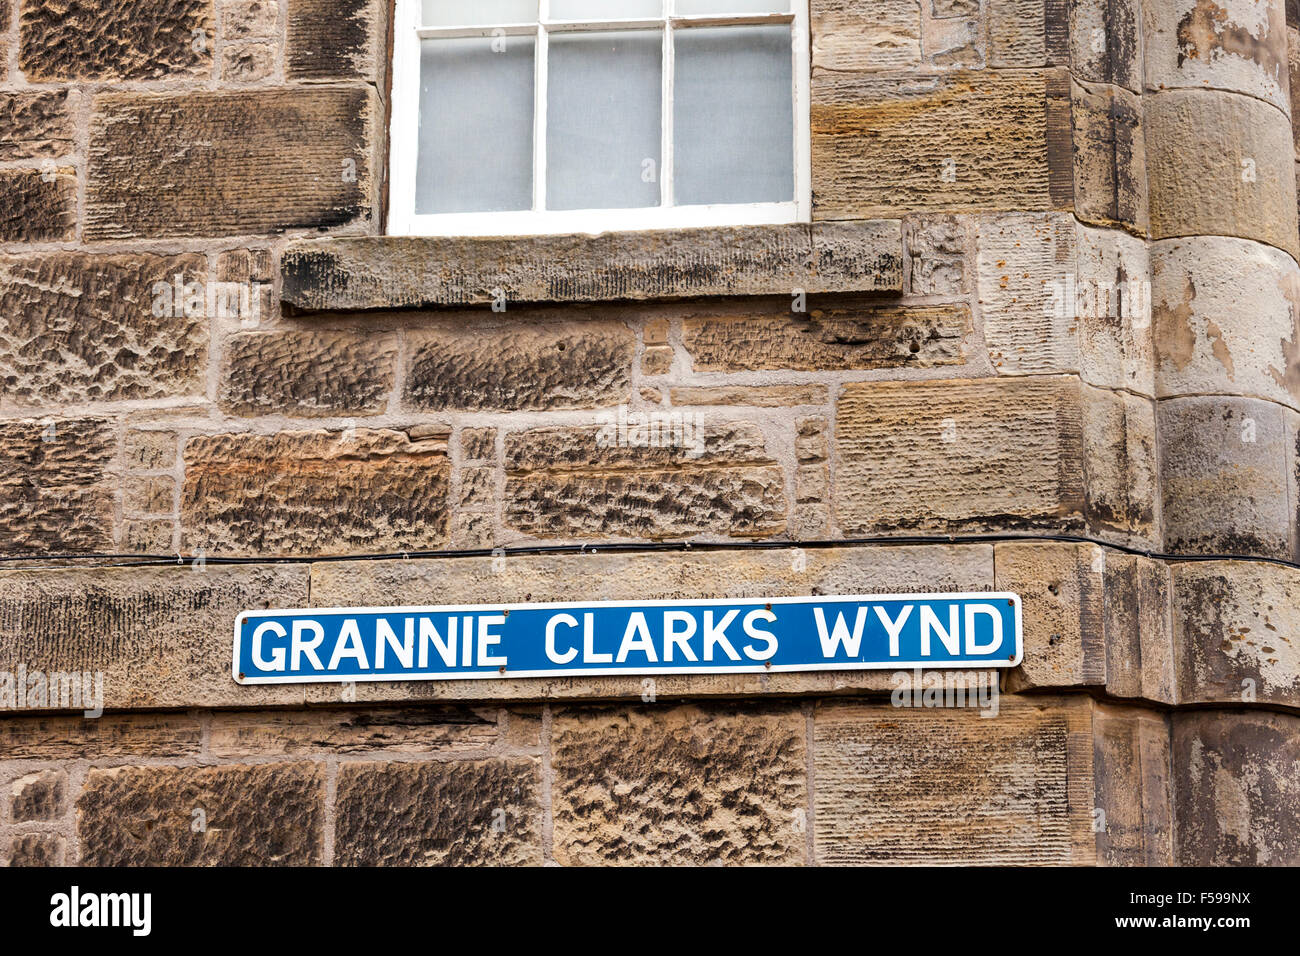 Grannie Clarks Wynd at St Andrews, Fife, Scotland UK - A Wynd is a narrow lane or alley - Stock Image